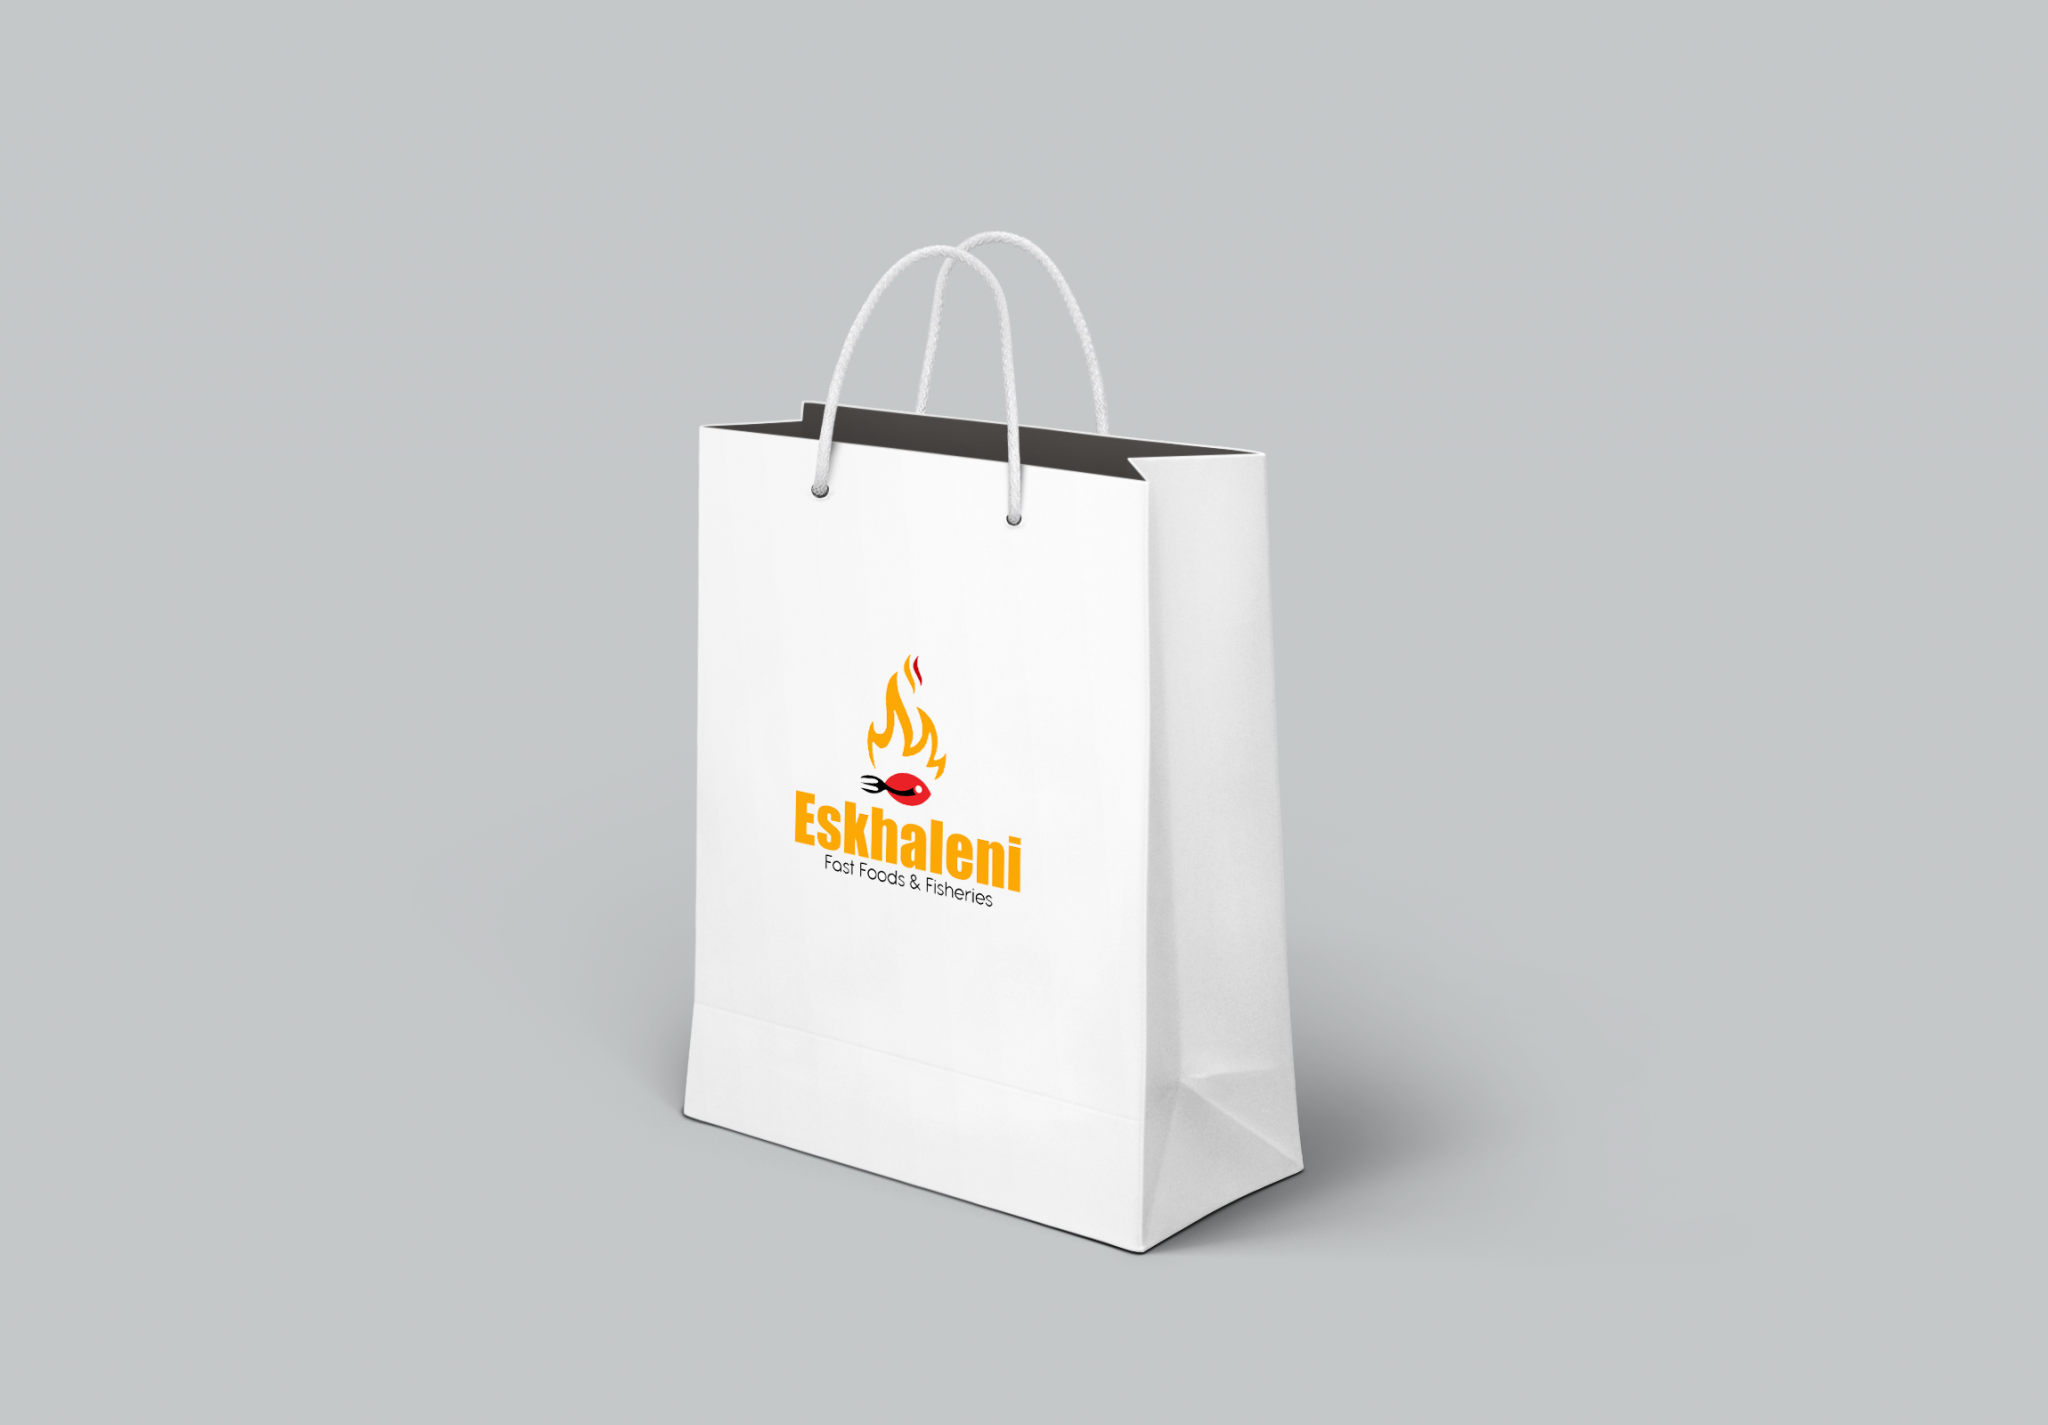 Eskhaleni Shopping Bag